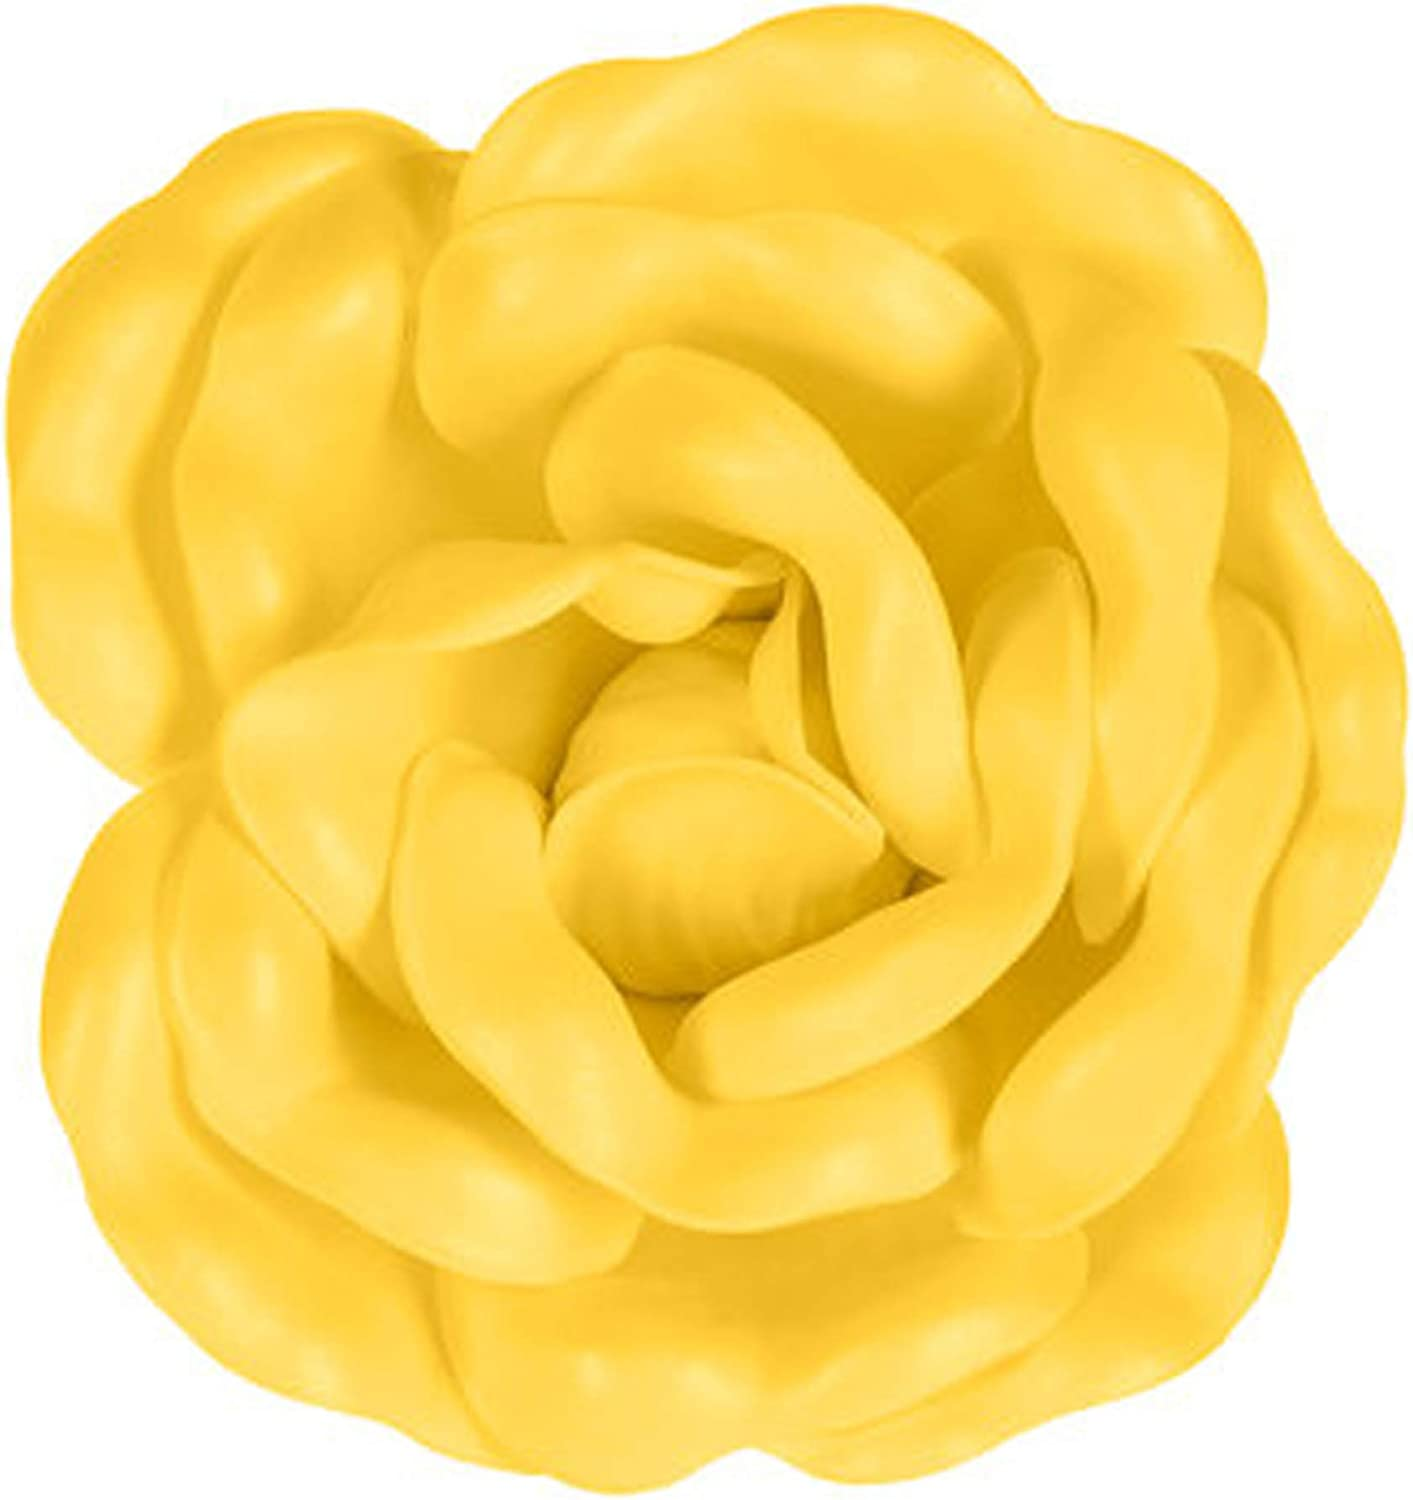 Home Collection Decorative Yellow Flower Adhesive Wall Decor - Small for Home, Gallery Walls, Office Walls or Any Event Decorations, 4 in W